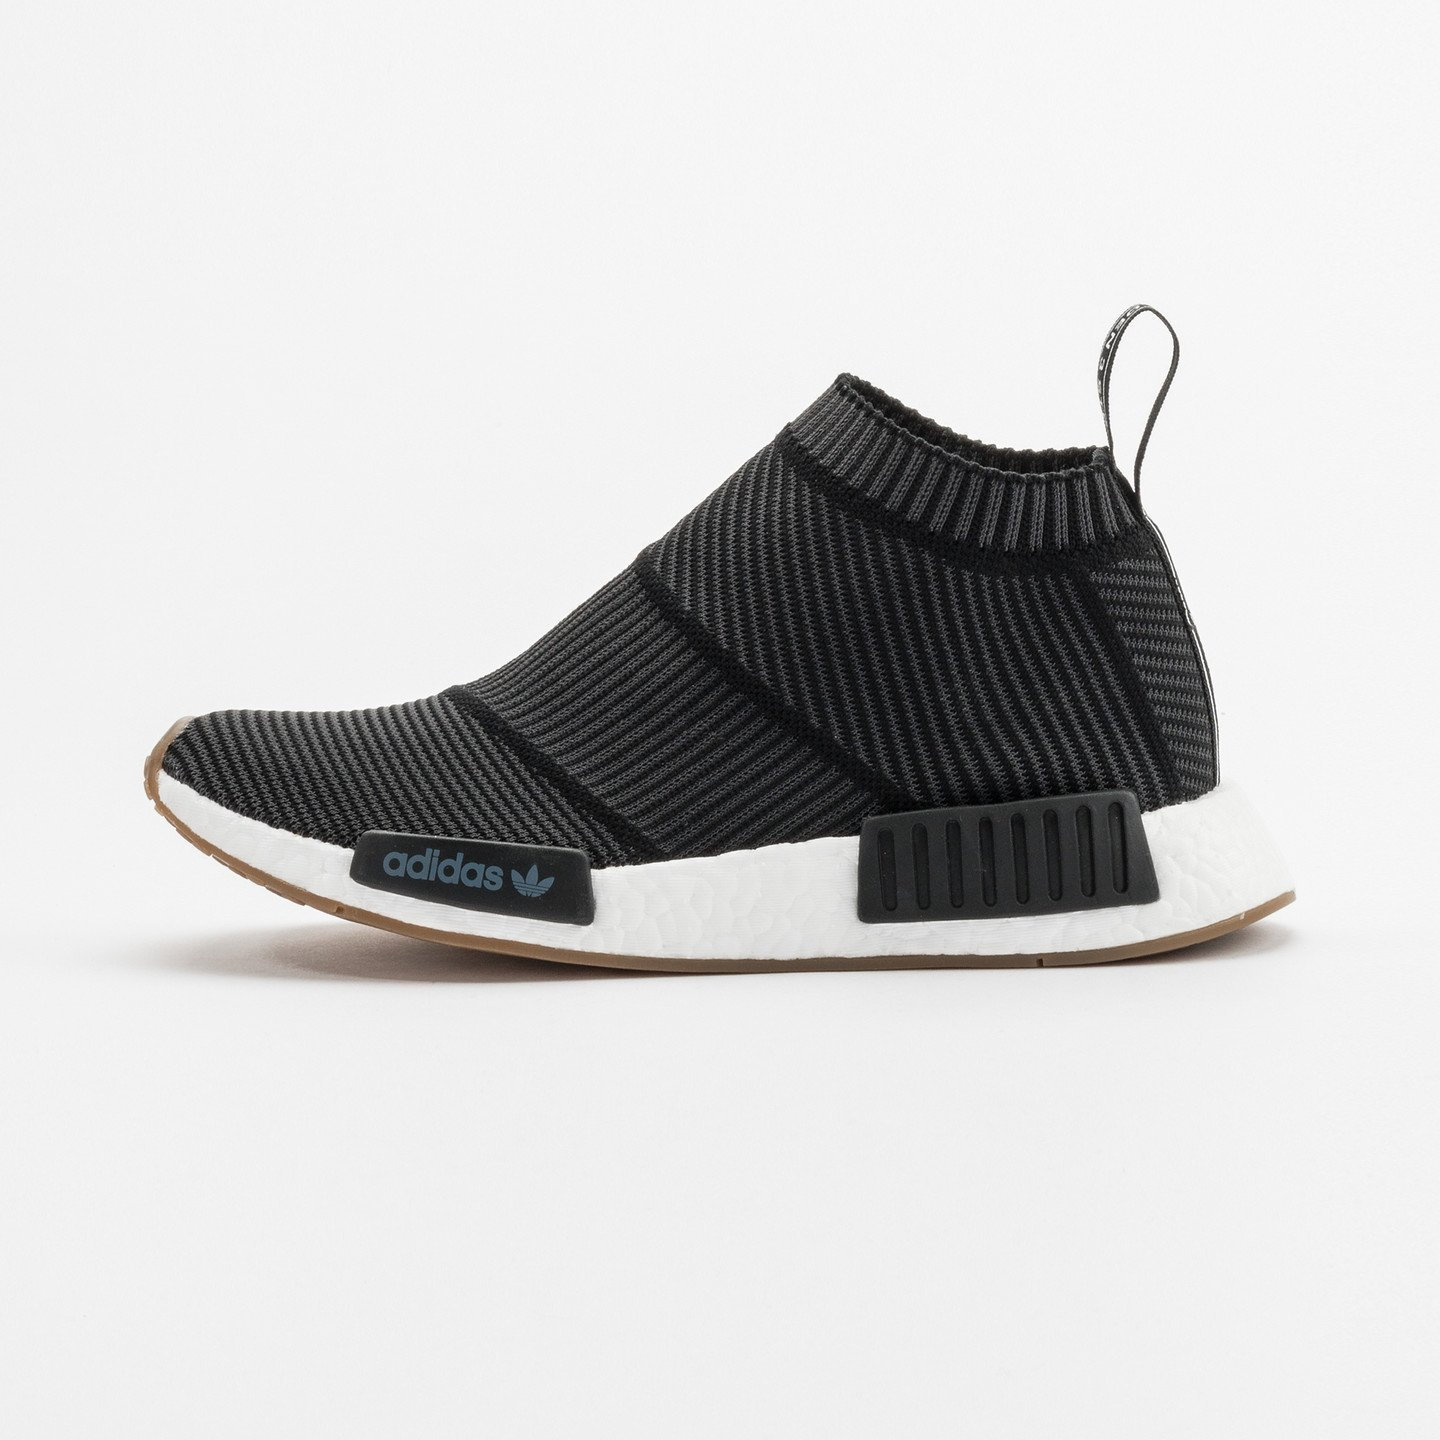 Adidas NMD CS1 City Sock Boost Primeknit Core Black / Gum BA7209